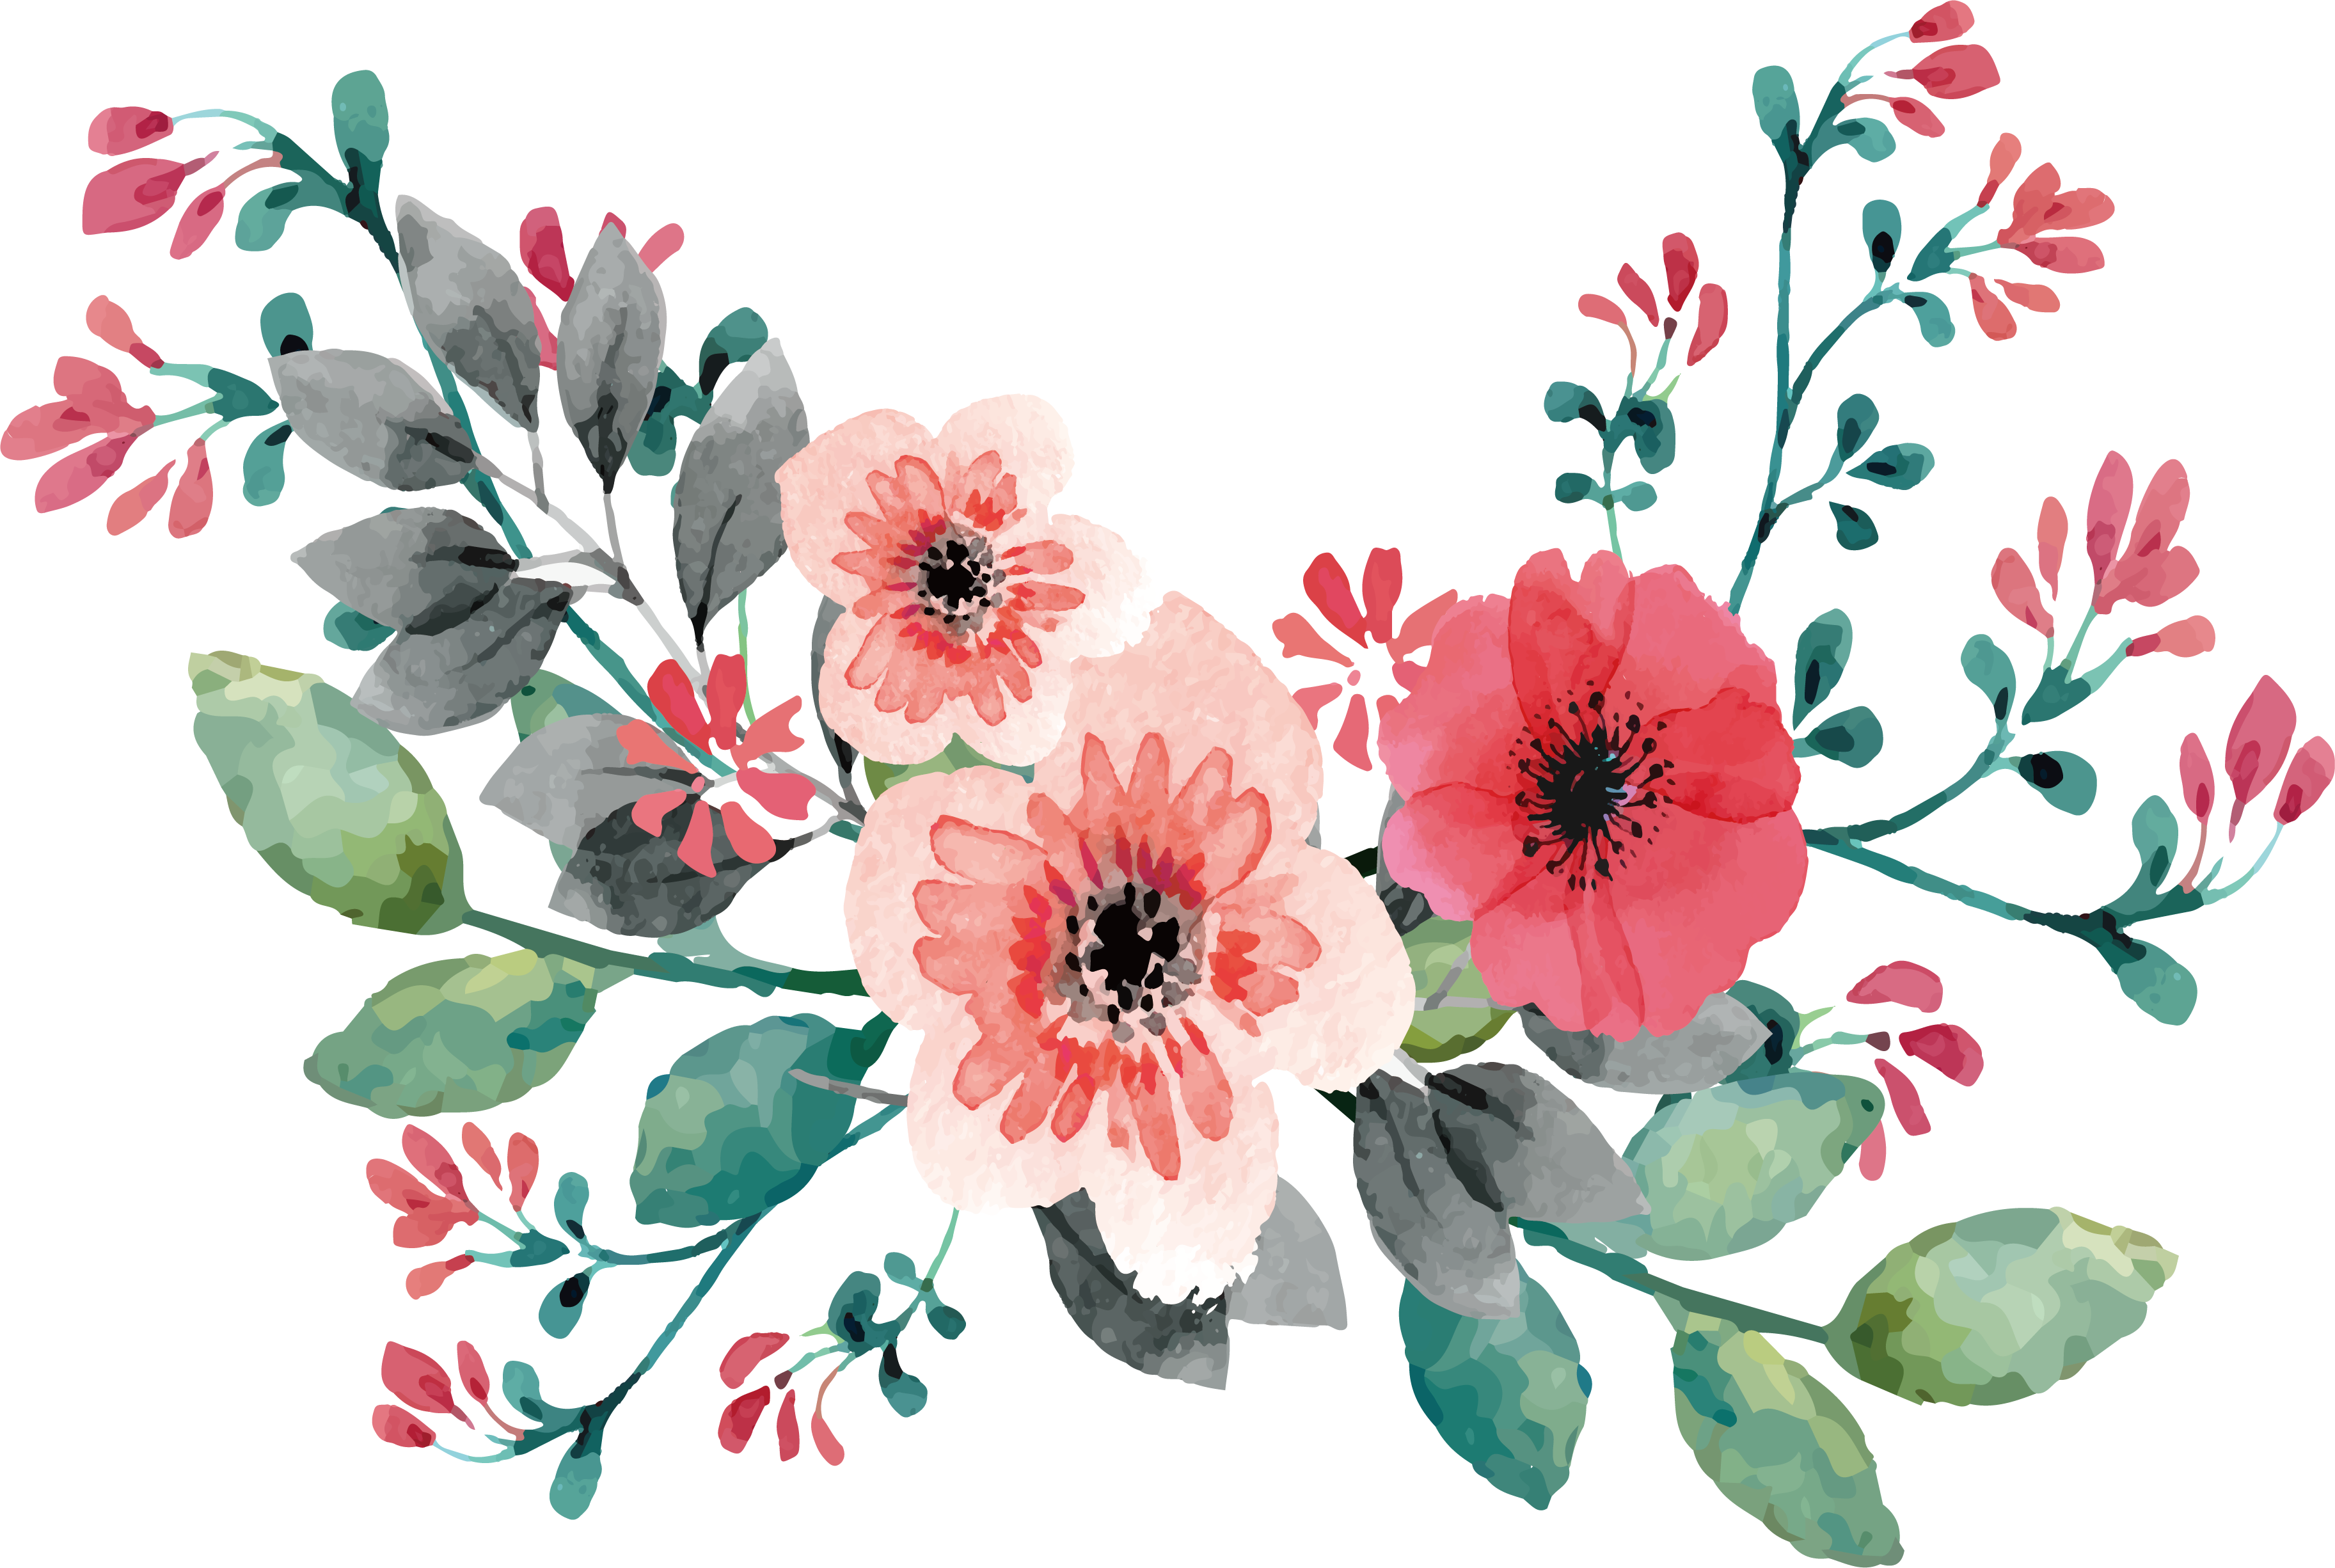 Wedding flower bouquet clipart picture freeuse Wedding invitation Flower Watercolor painting Clip art - Pink ... picture freeuse